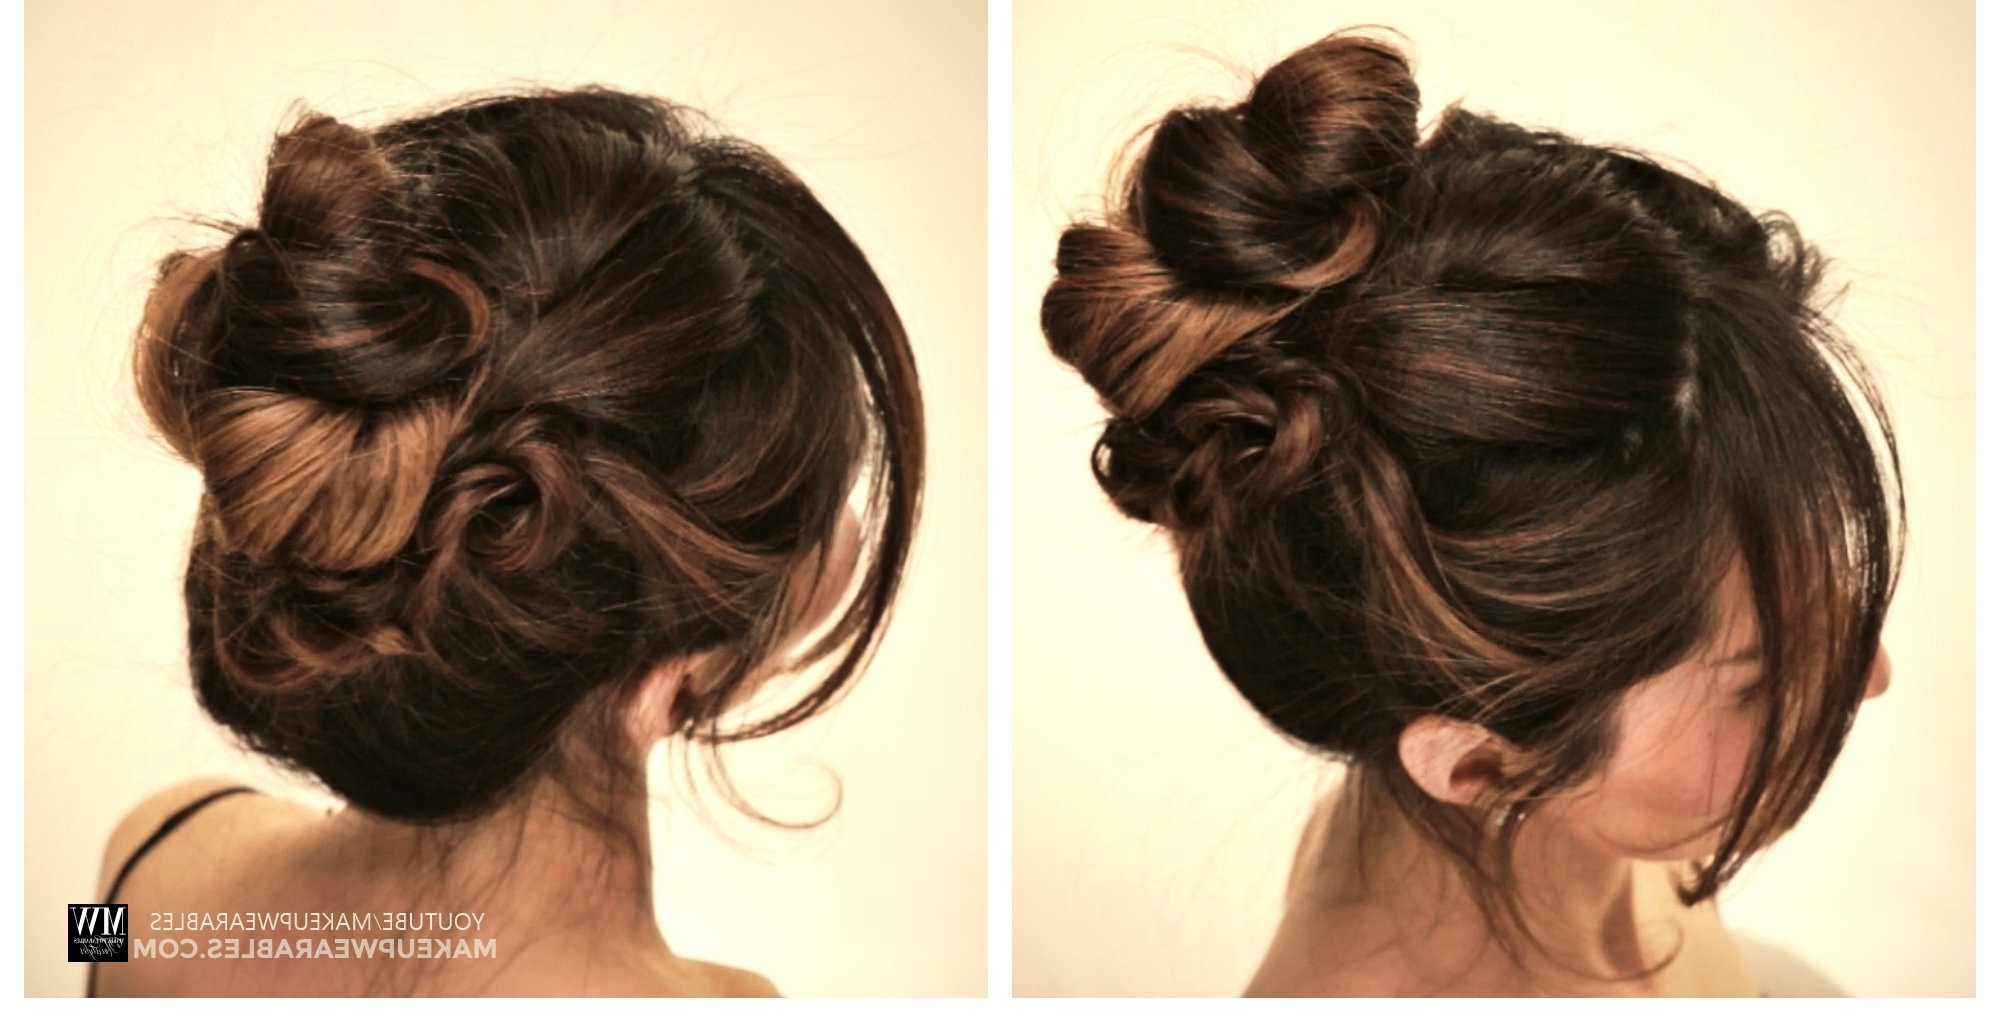 How To: 5 Amazingly Cute + Easy Hairstyles With A Simple Twist Within Fast Updos For Long Hair (View 11 of 15)